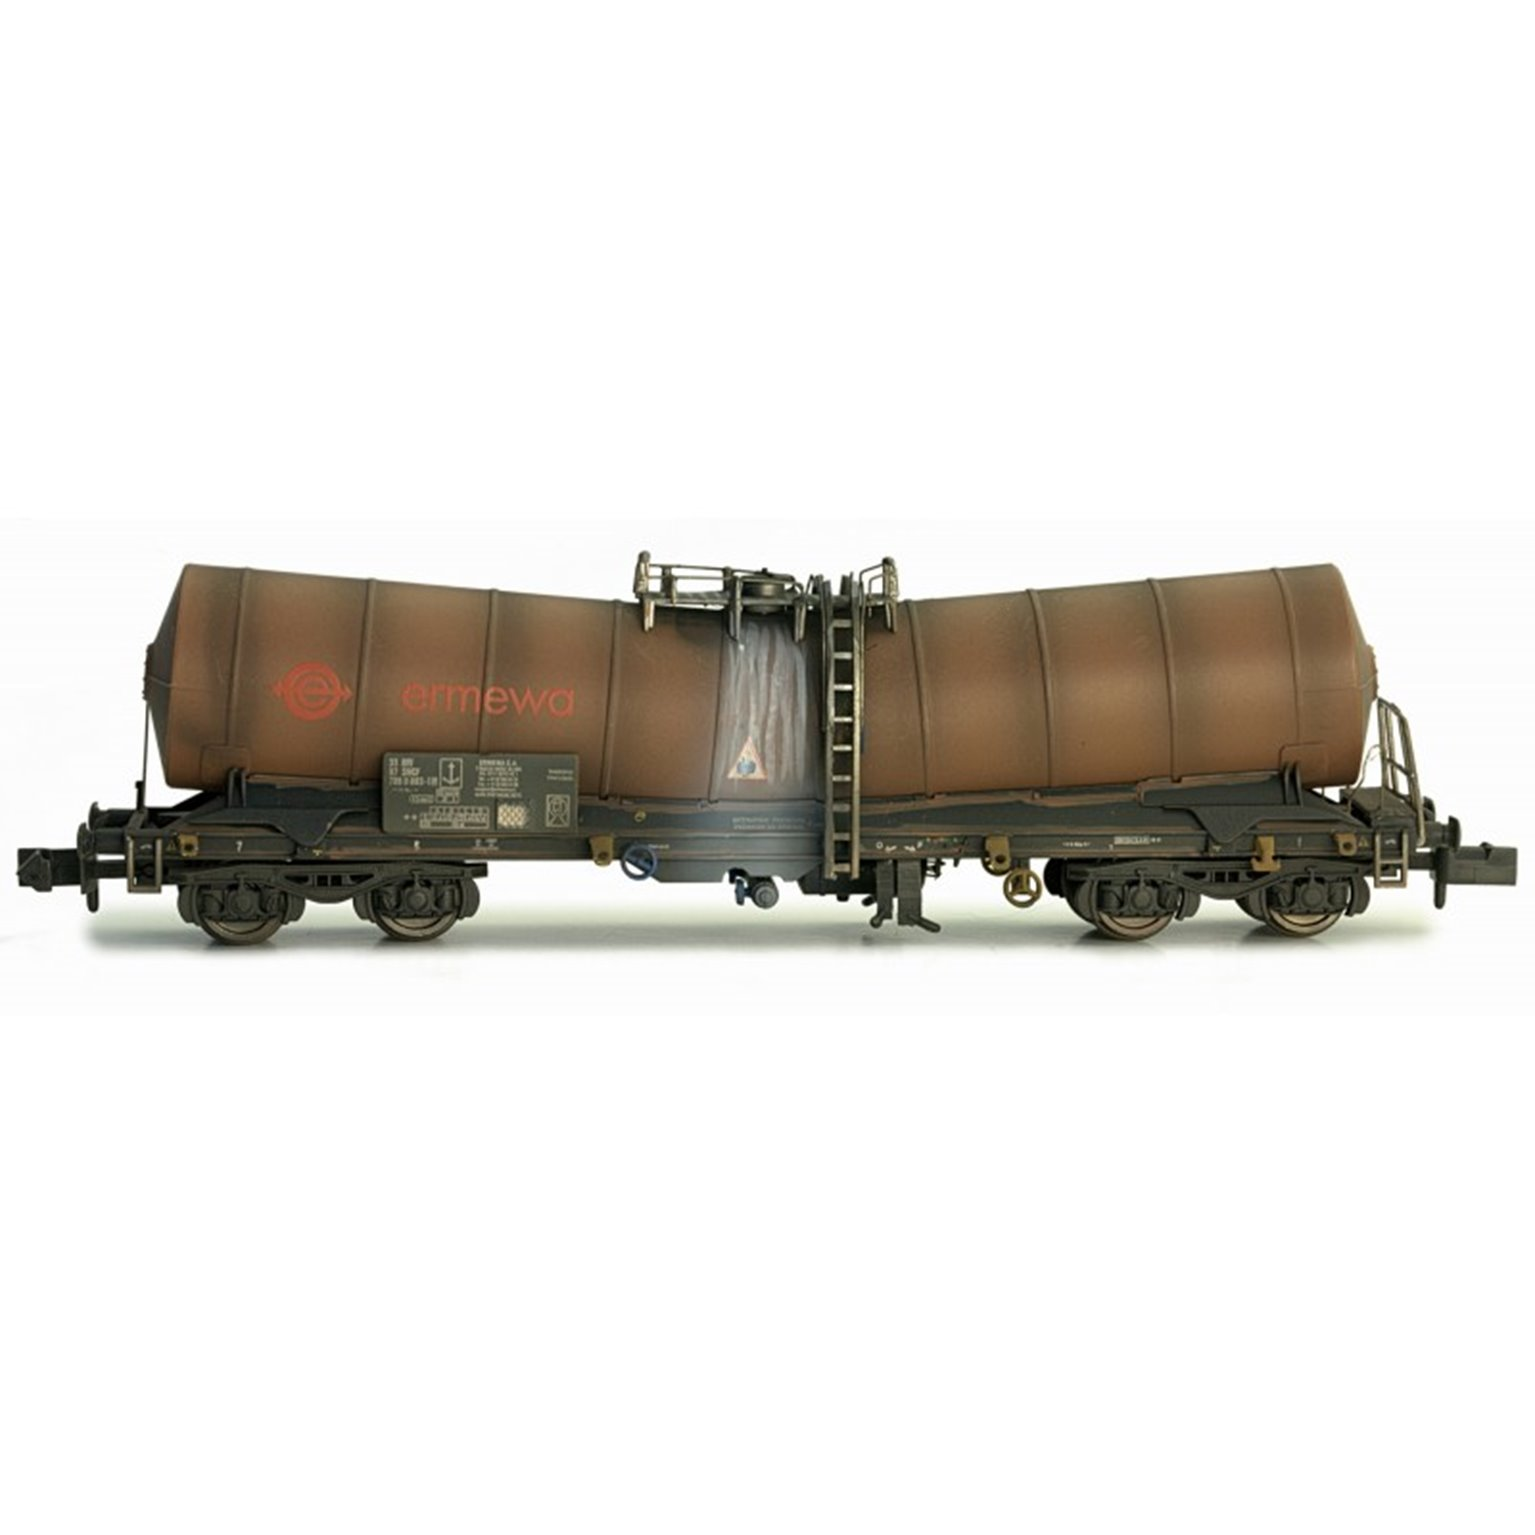 Silver Bullet Ermewa 33 87 789 8003-1 Weathered